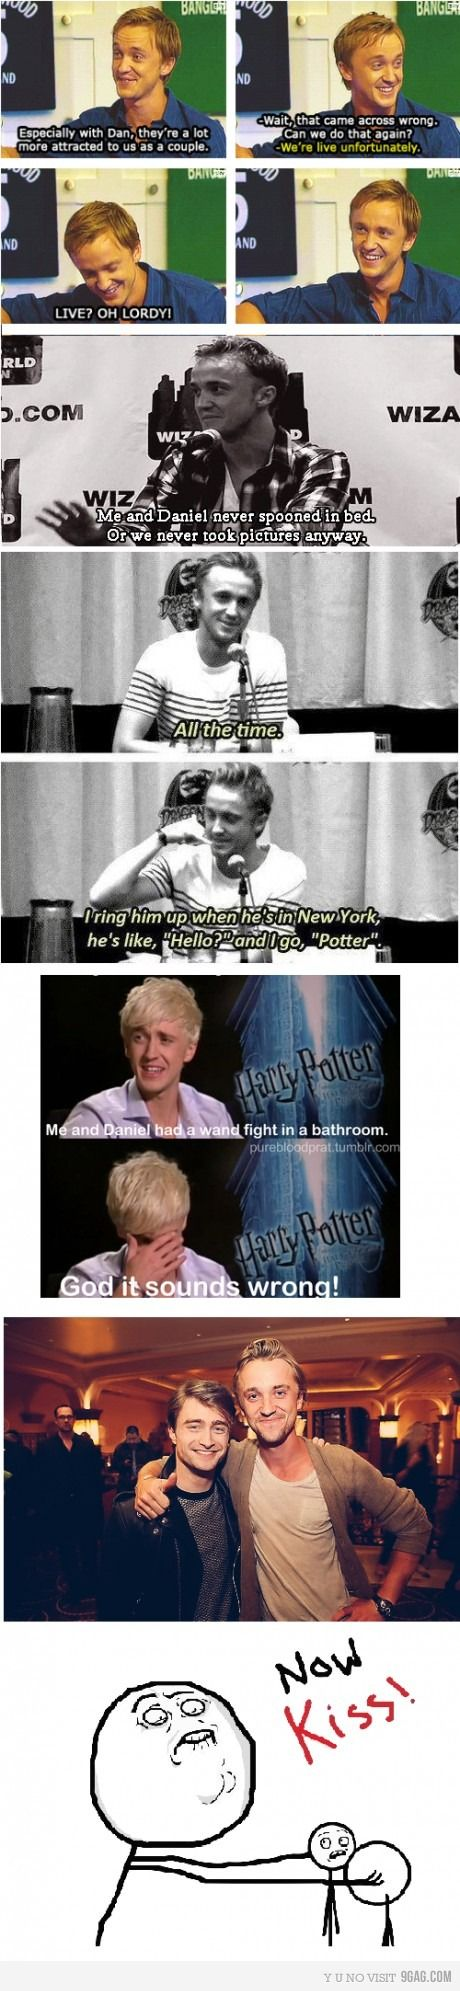 Tom Felton. This might be the most beautiful bromance of all time.